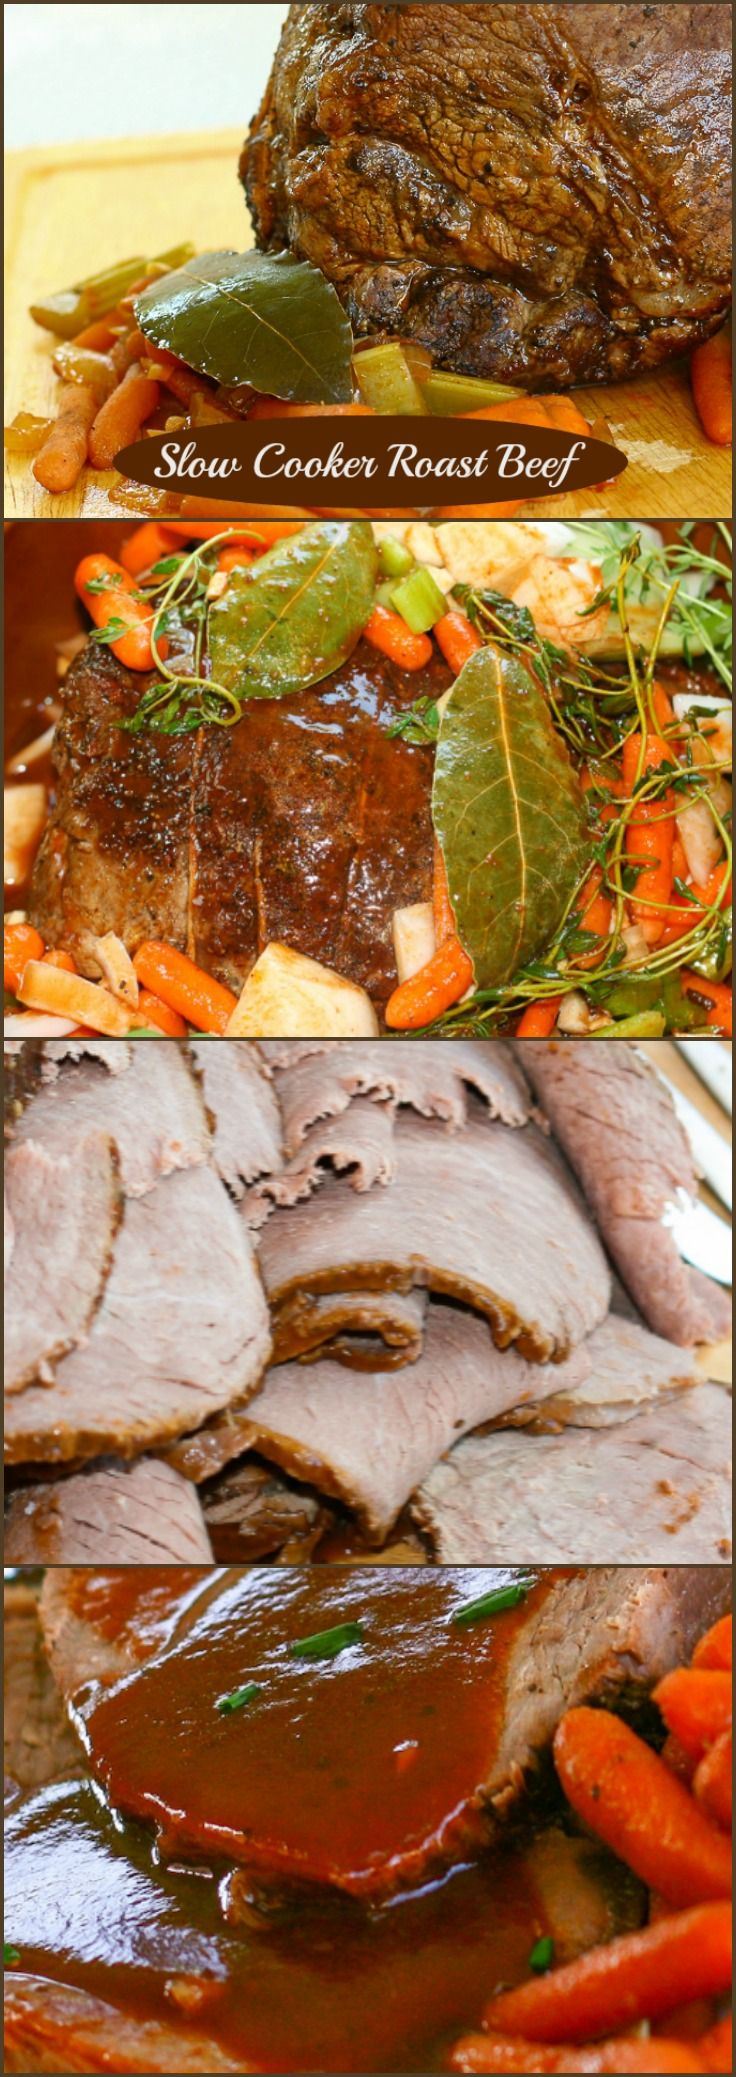 This recipe for Slow Cooker Roast Beef is cooked in an amazingly flavourful broth that uses both red wine and Guinness Beer! Slow cooking the beef makes an incredibly tender roast.